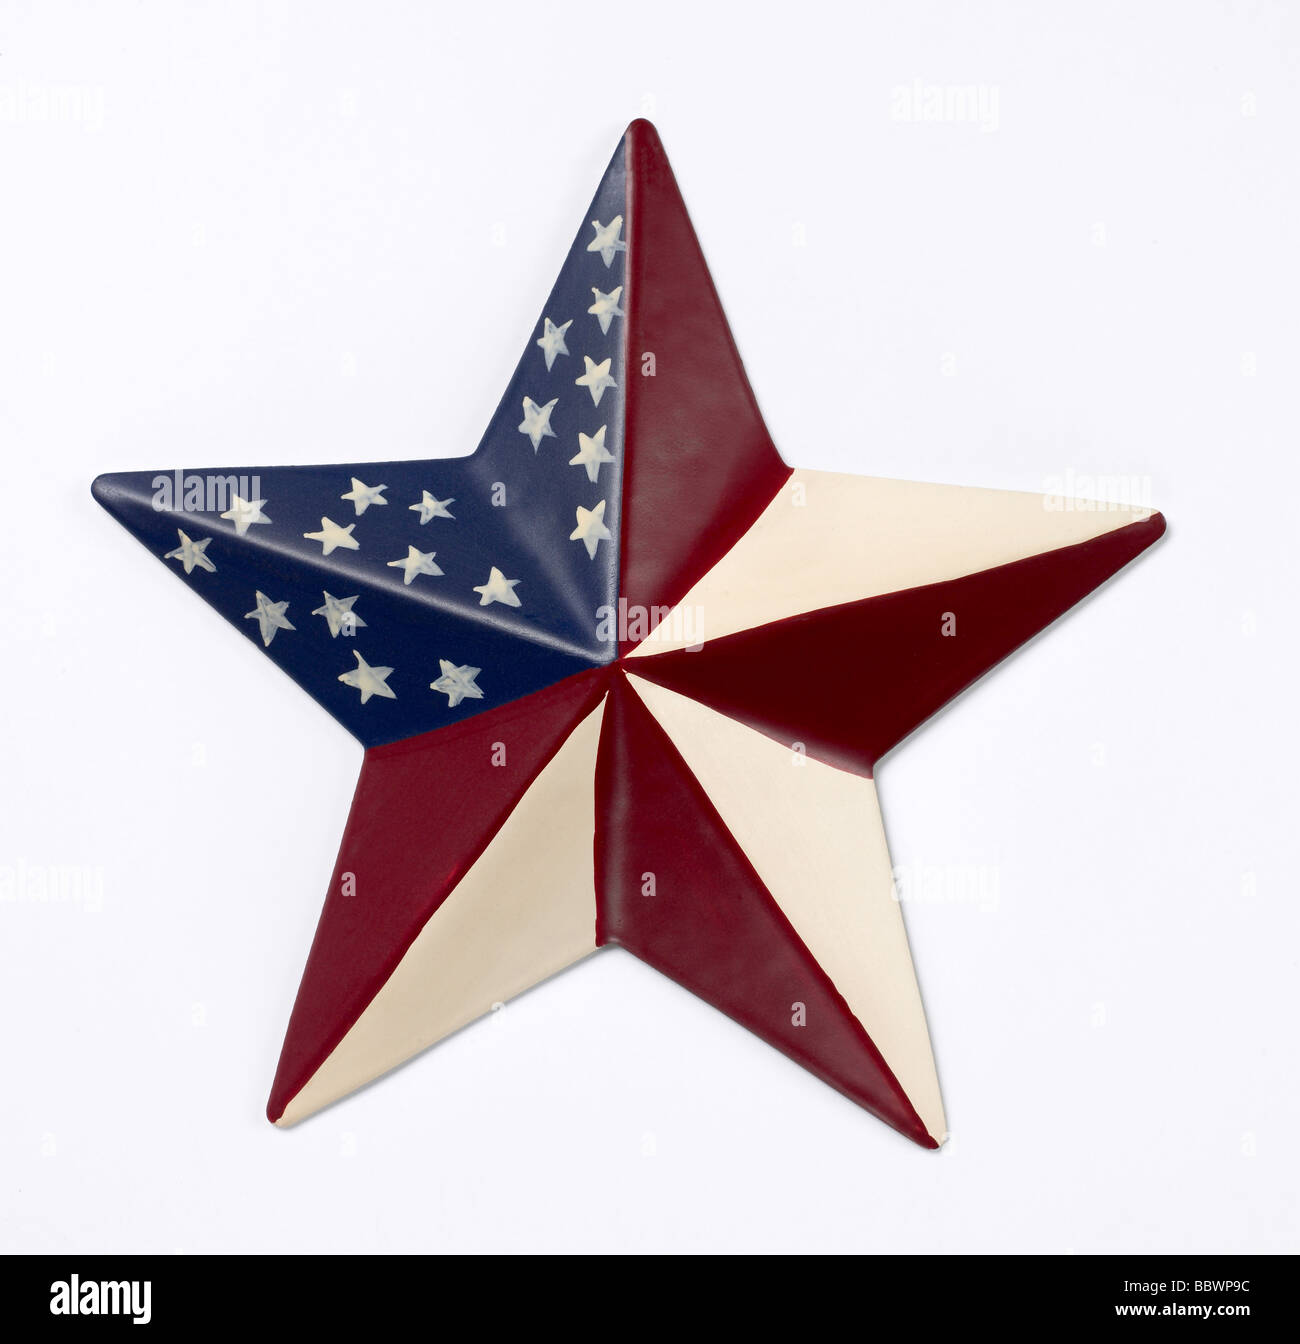 Rouge Blanc Bleu star Photo Stock